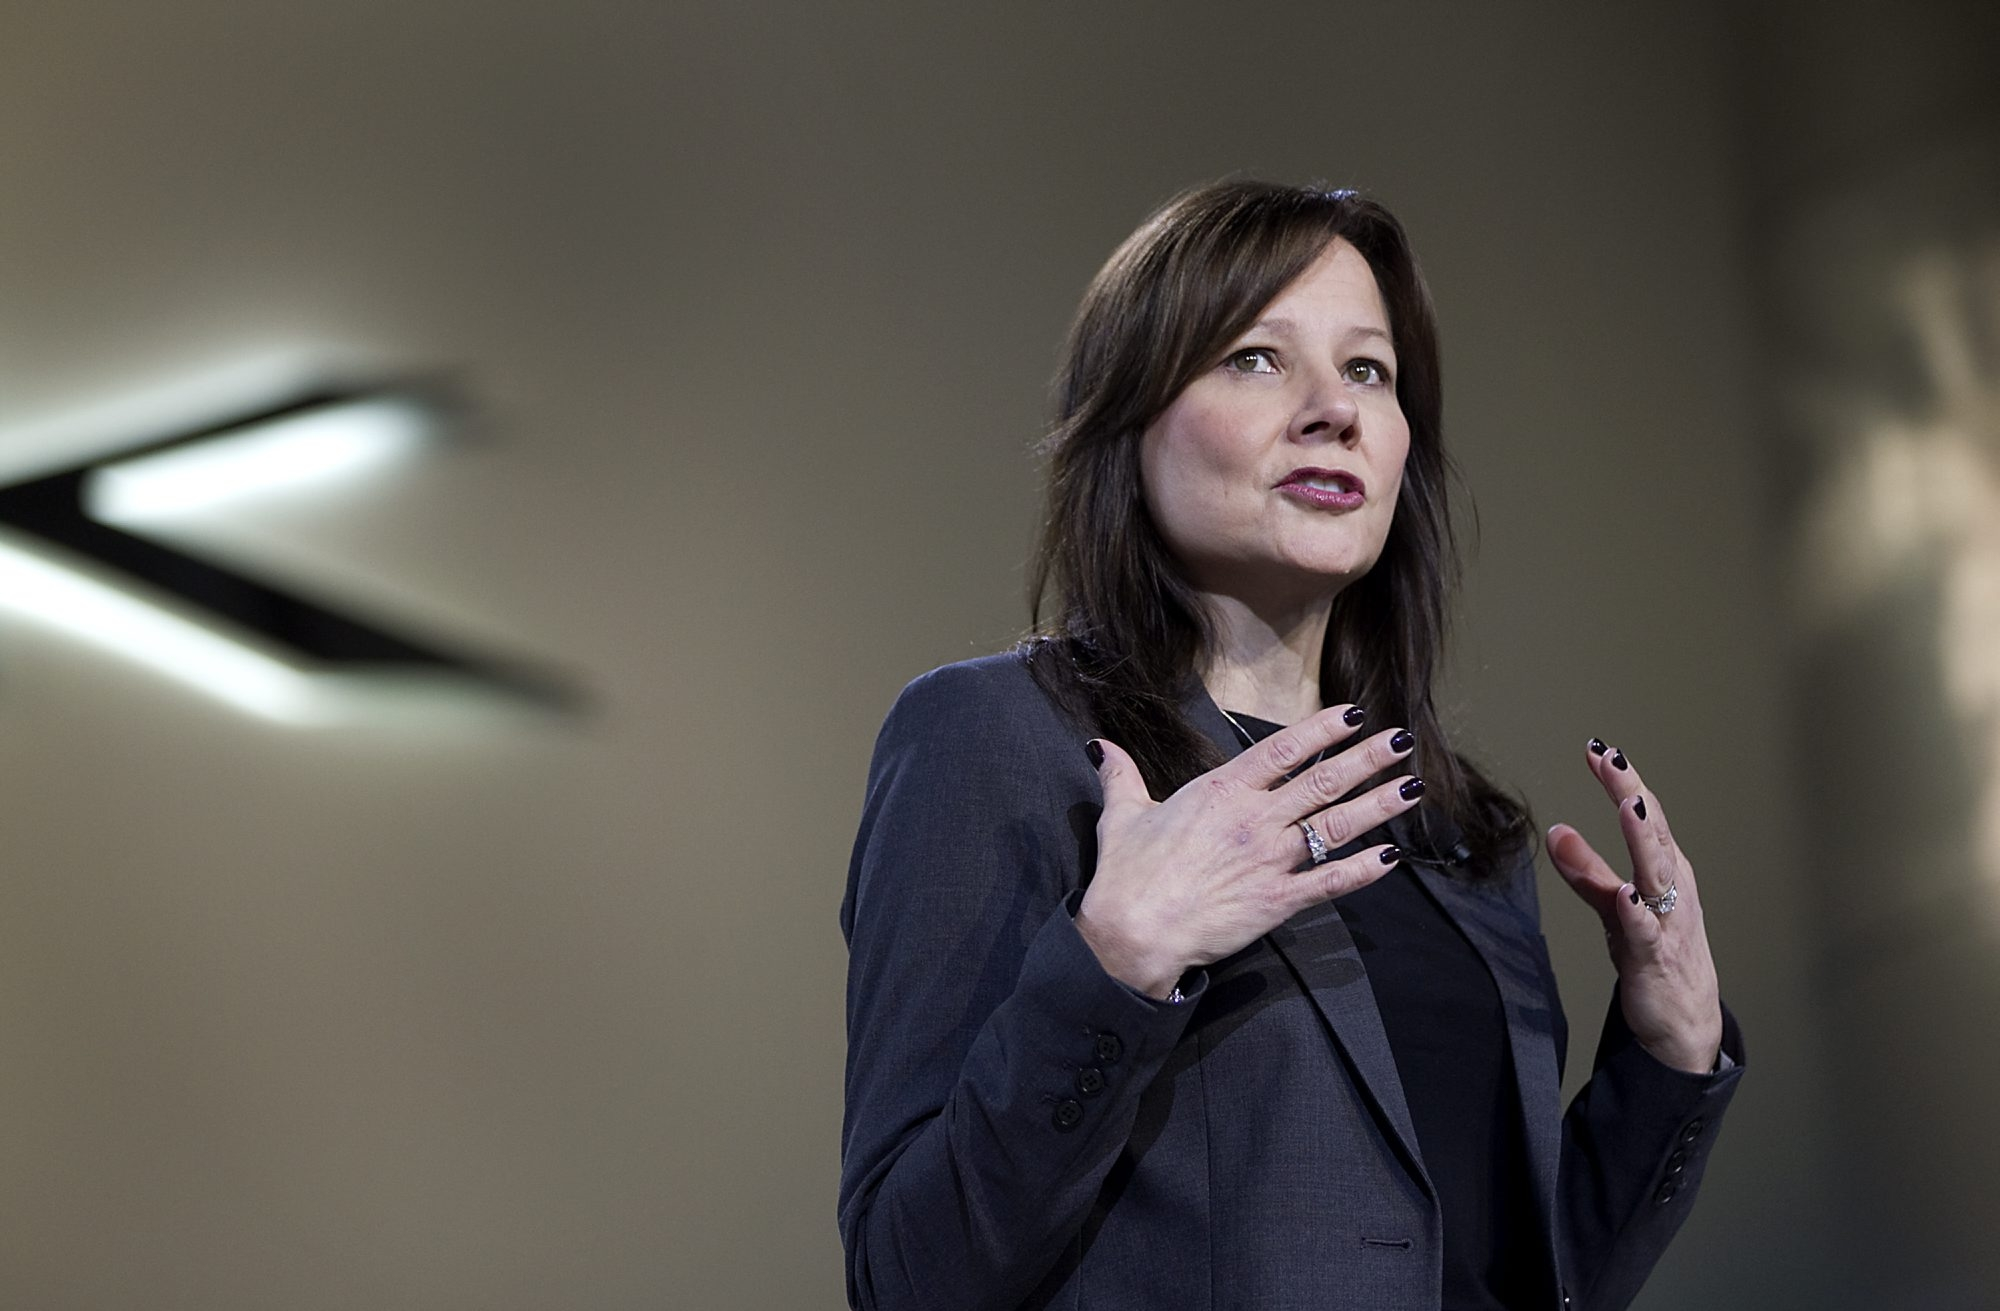 In one of her earlier roles, Mary Barra, senior vice president at General Motors Co., shook up the way the automaker handles its human resources: She shrank its employee manual by 80 percent and cut by 90 percent the number of reports required.